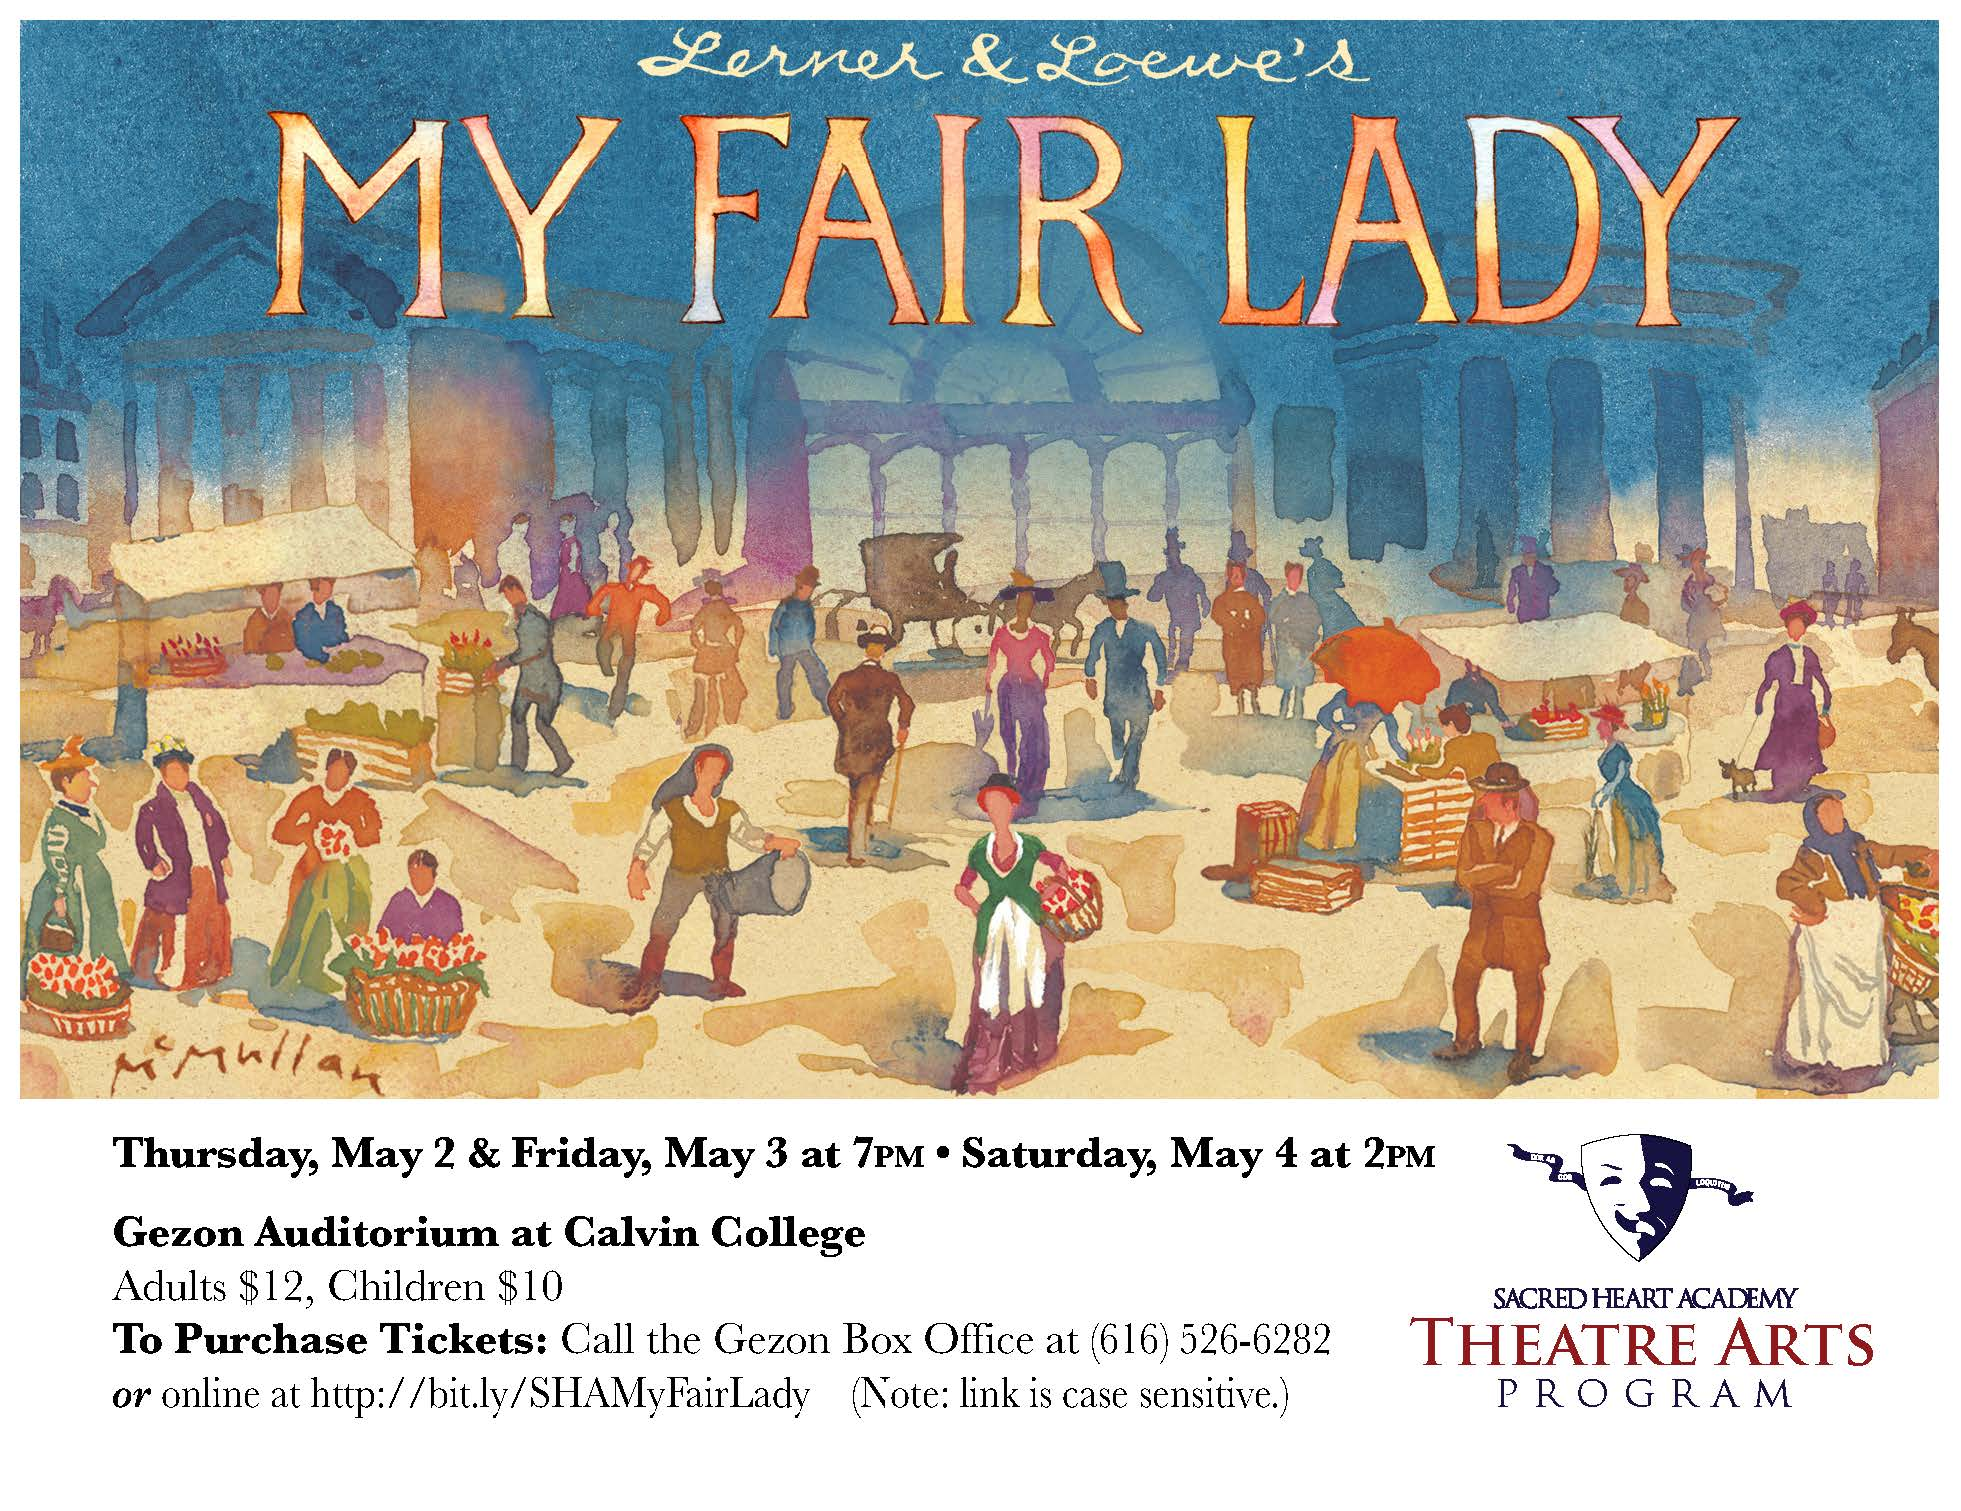 Academy presents: My Fair Lady at Gezon Auditorium